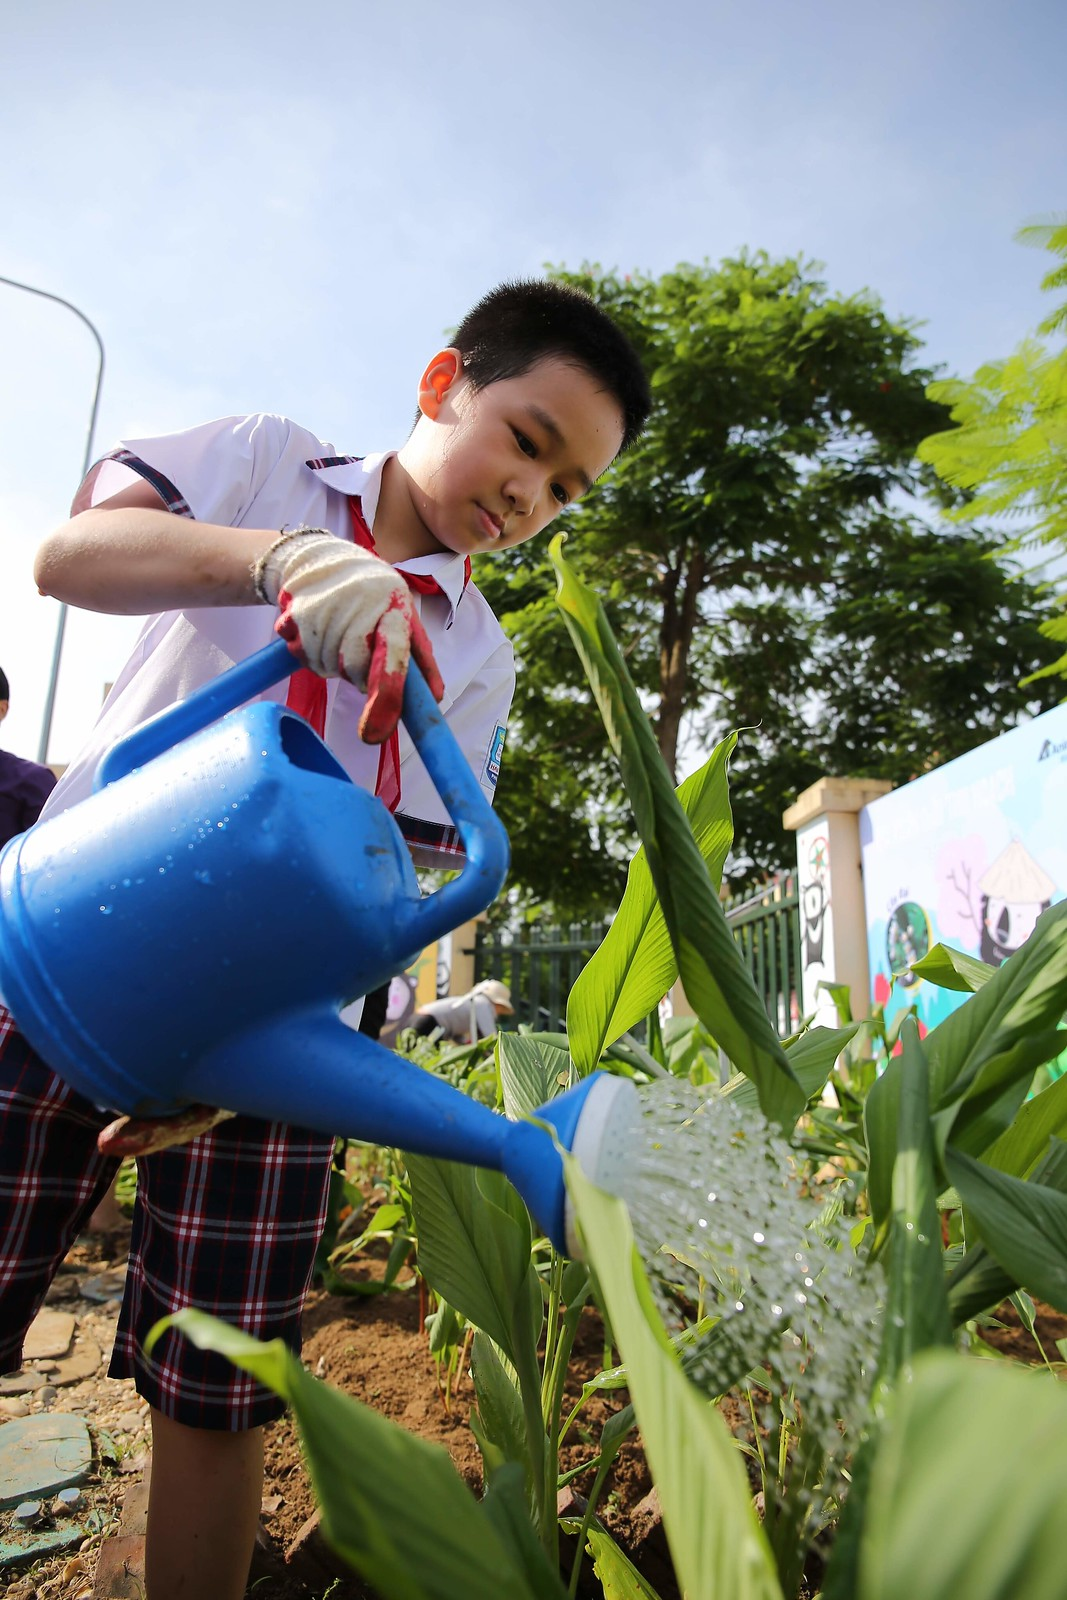 A student is watering plants